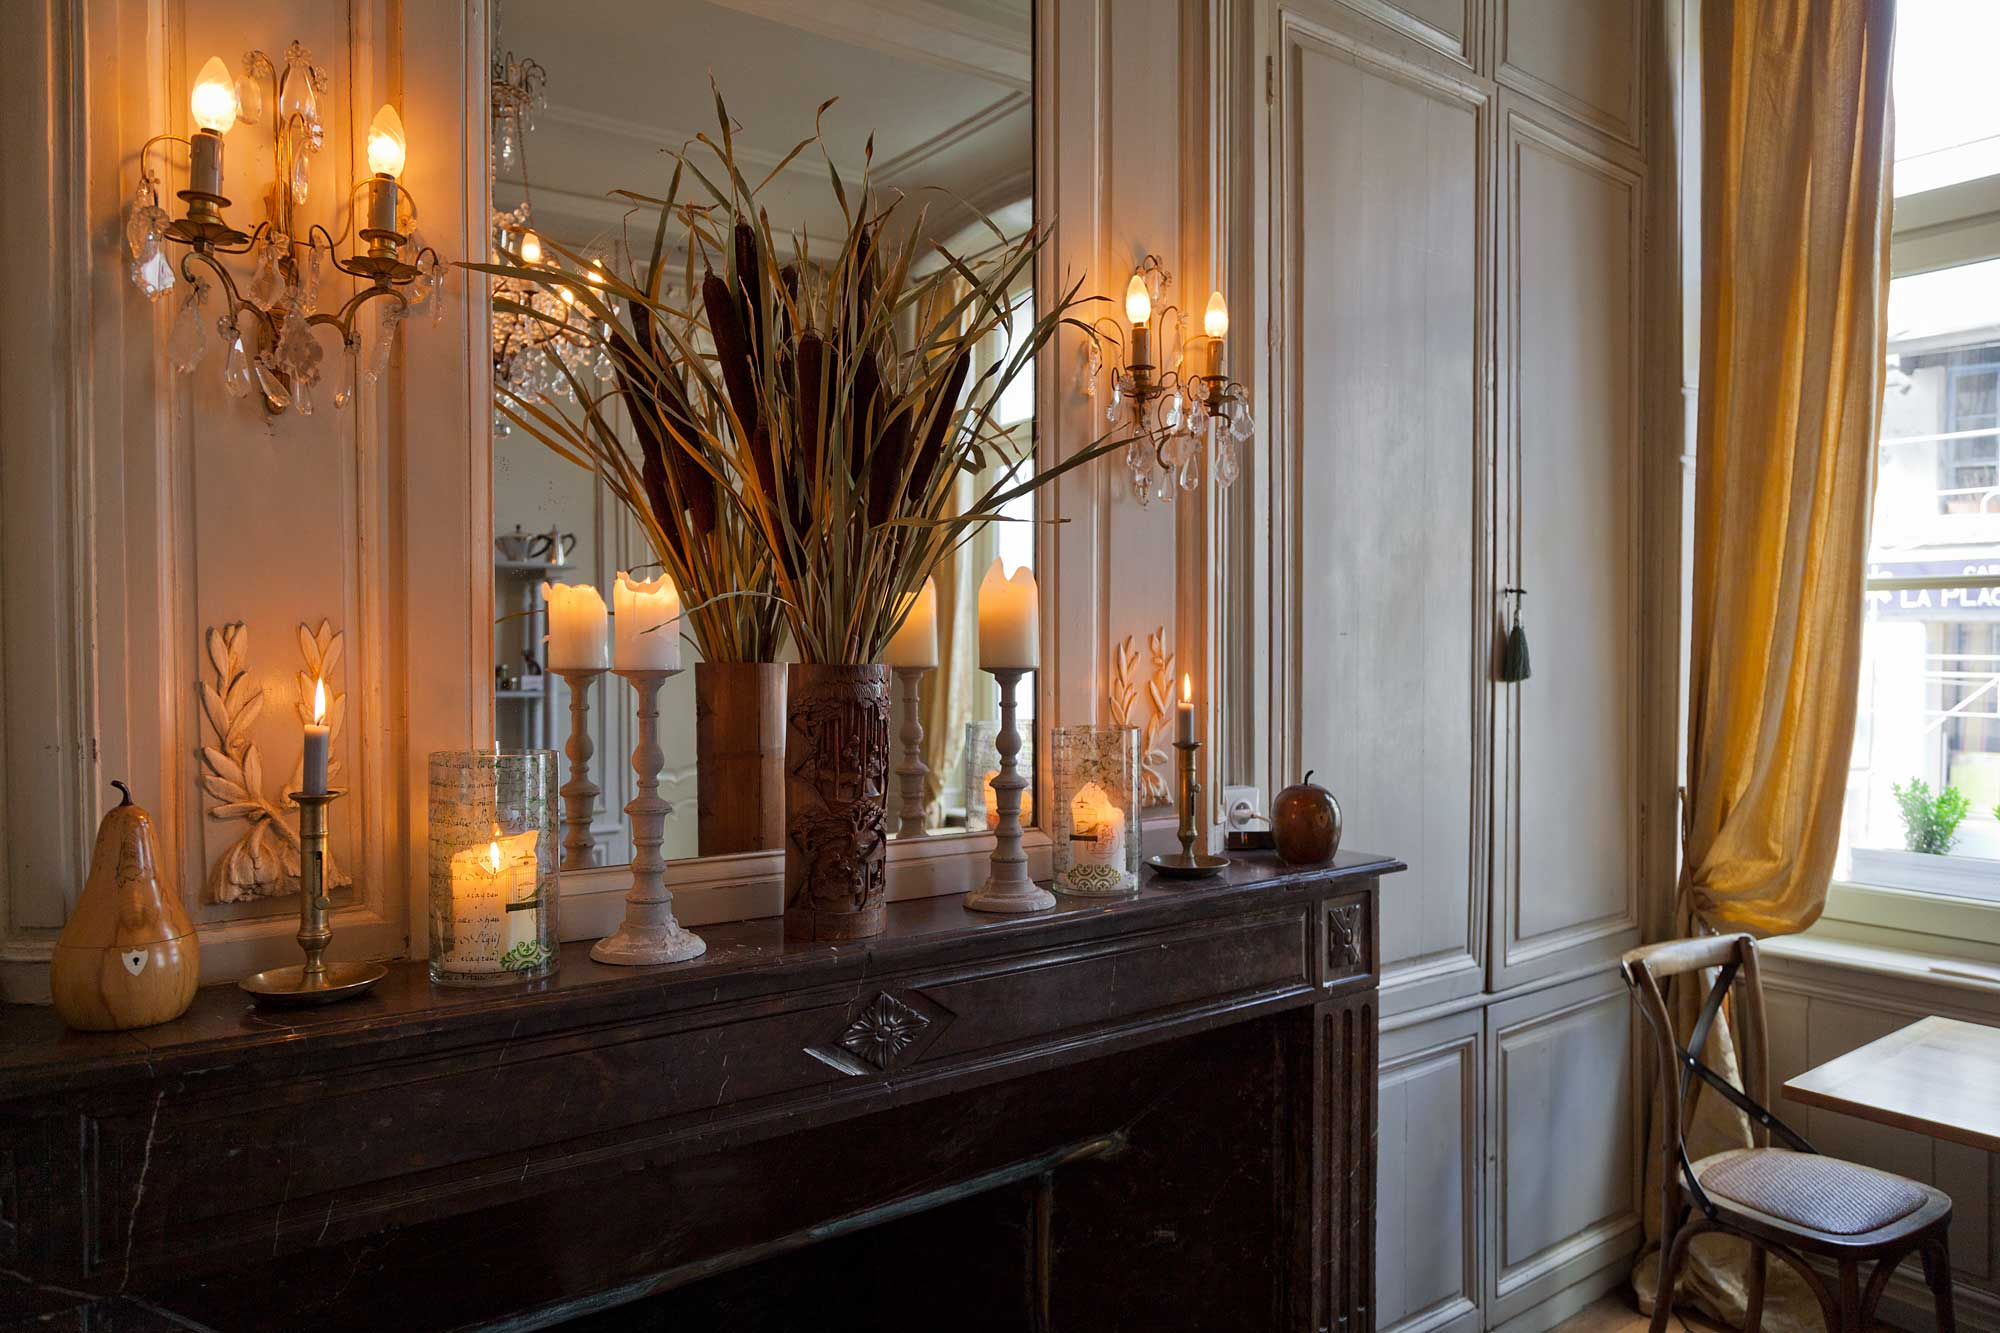 .The Dining Room at Maison76